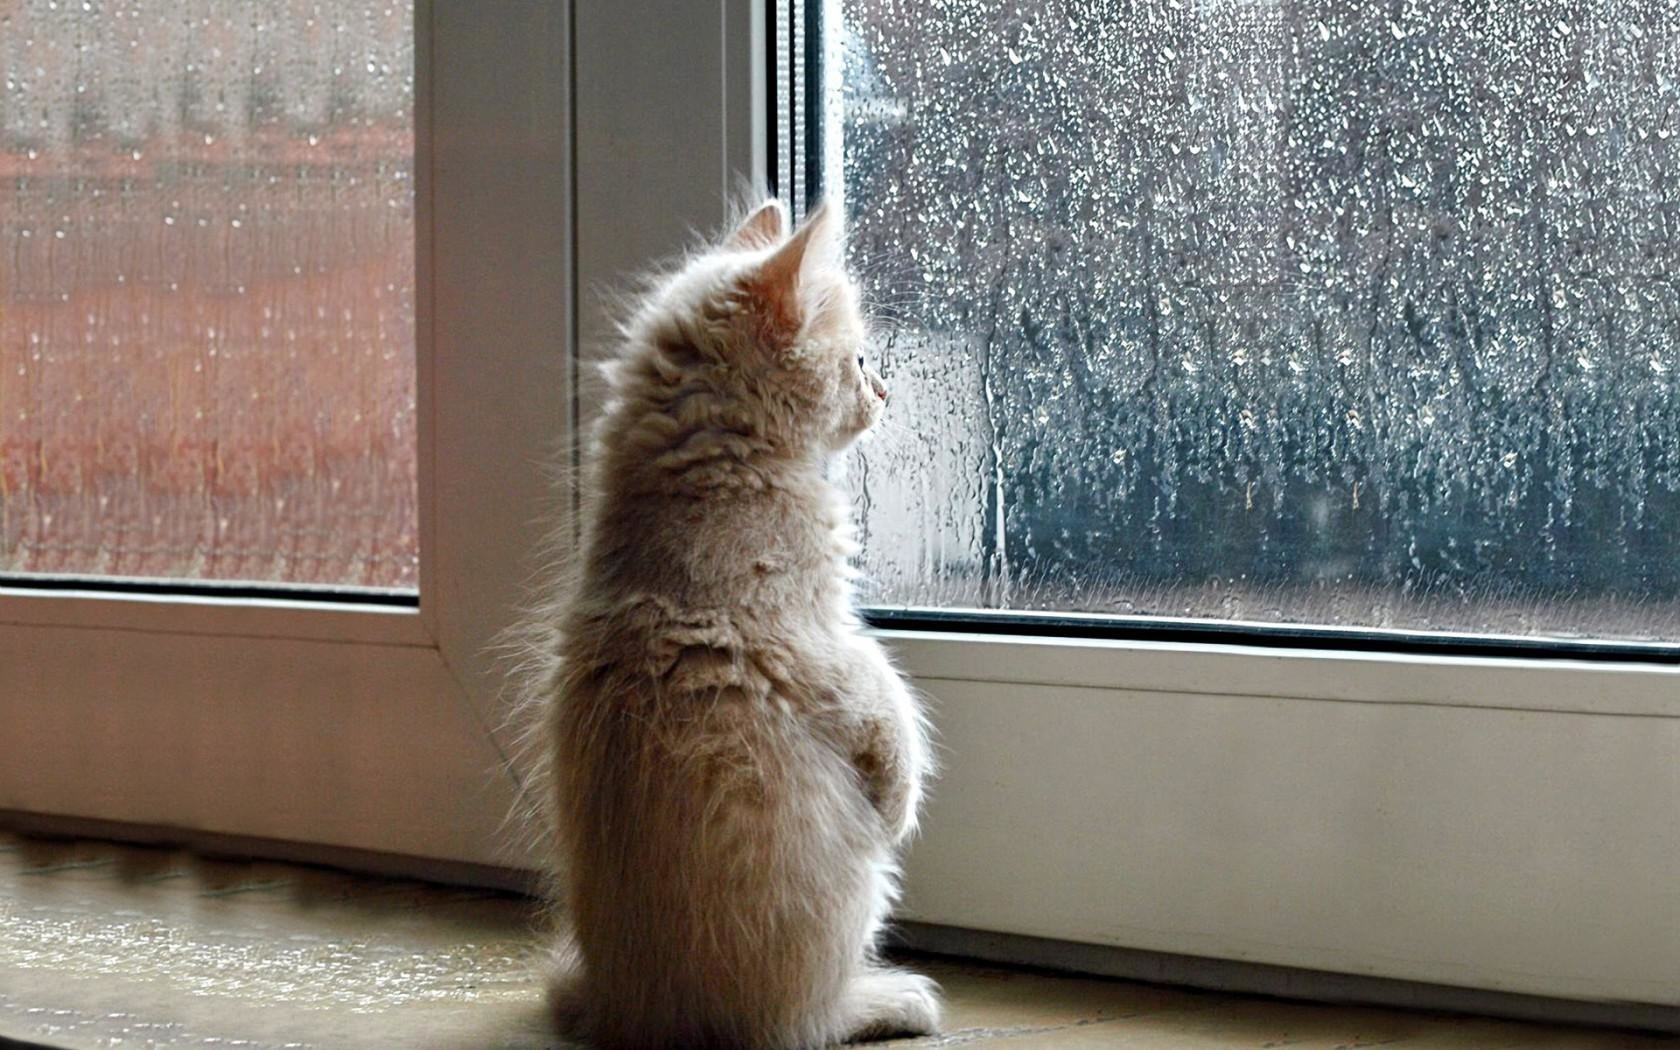 a cat watching the rain through a window Wallpaper and Background ...